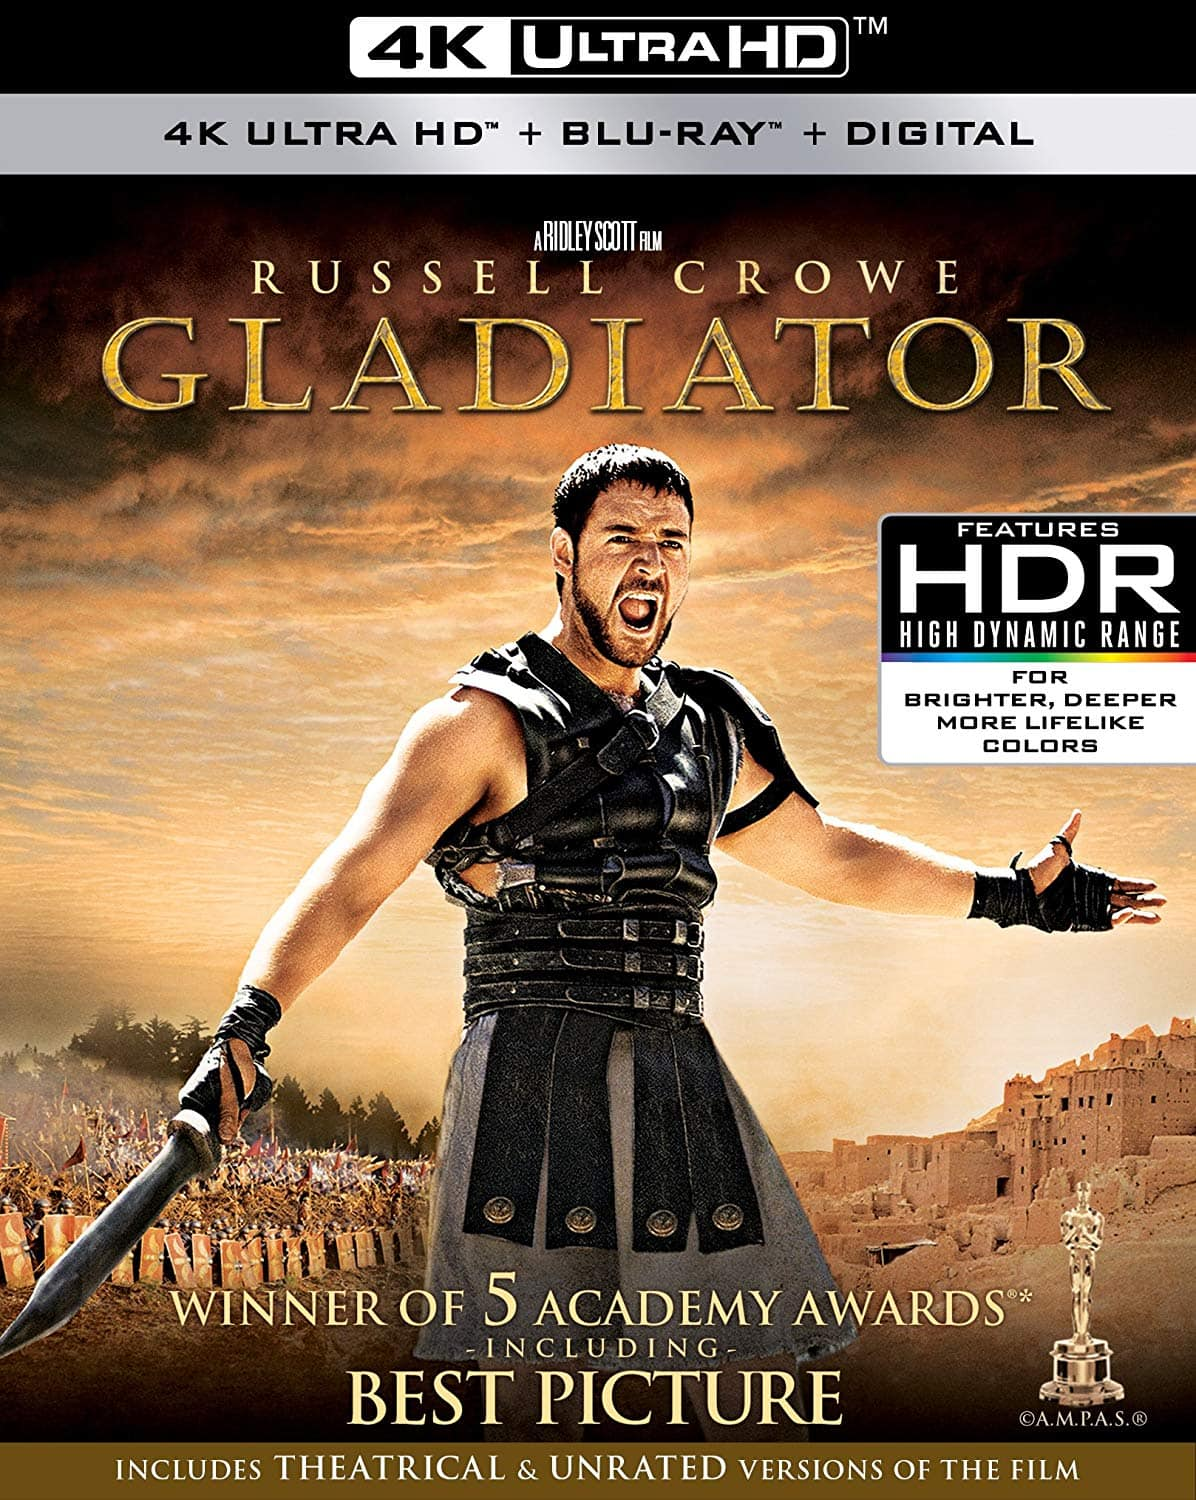 Gladiator 4K UHD $9.99 on Amazon.  Free Shipping with Prime or $25 Purchase